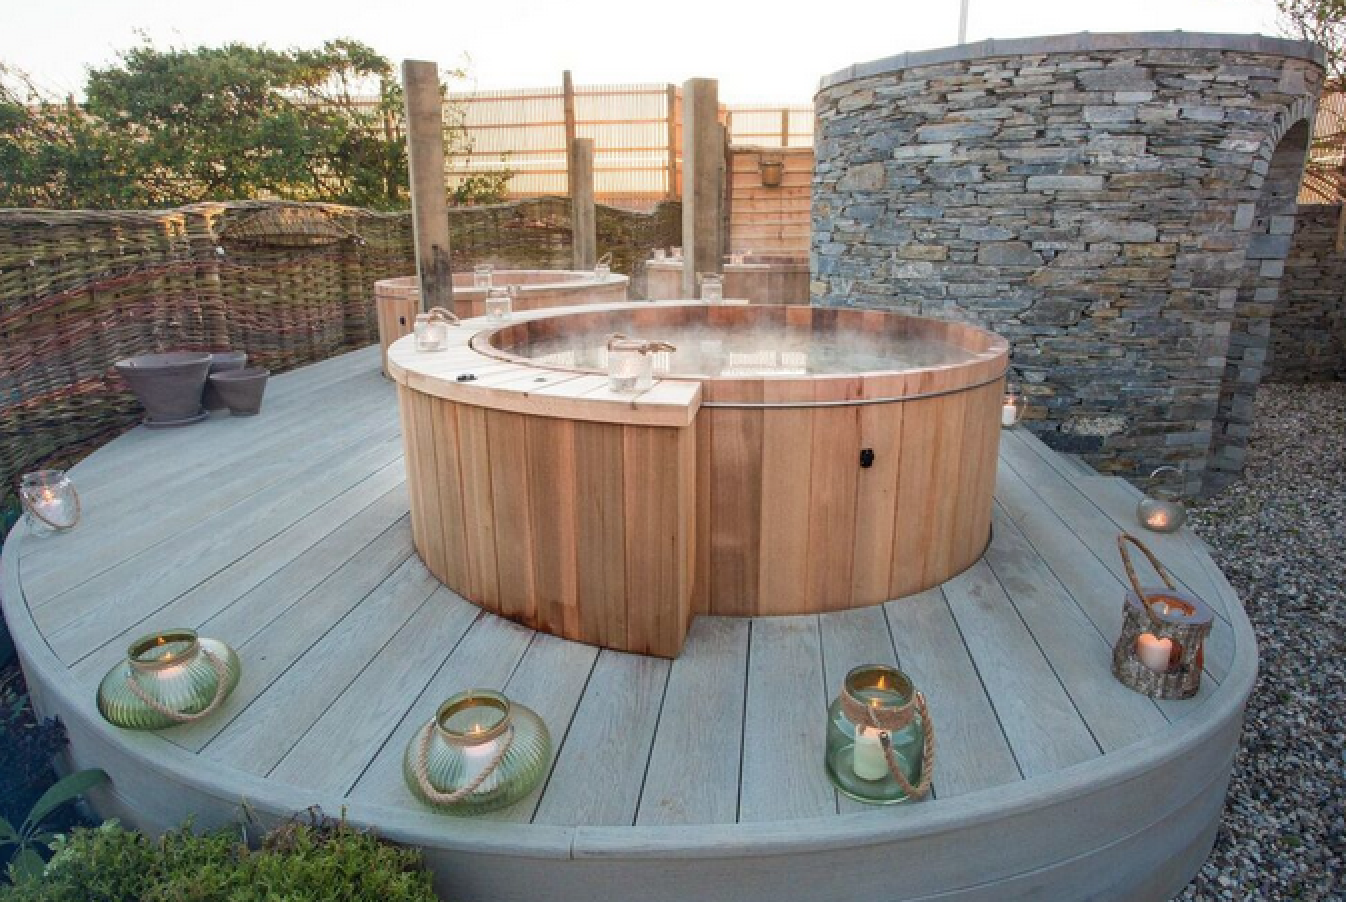 The Sensory Spa Garden at Bedruthan